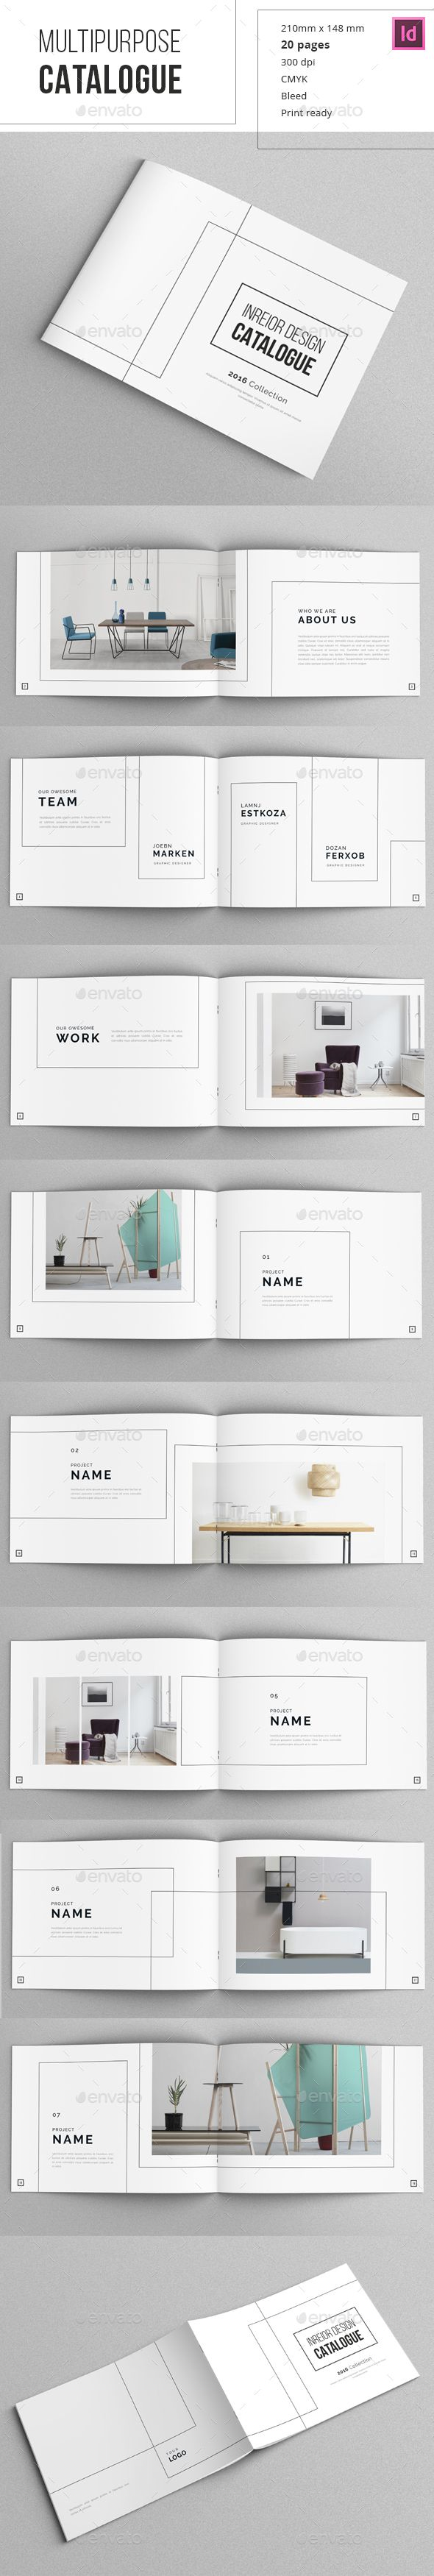 how to create a book page layout template in indesign